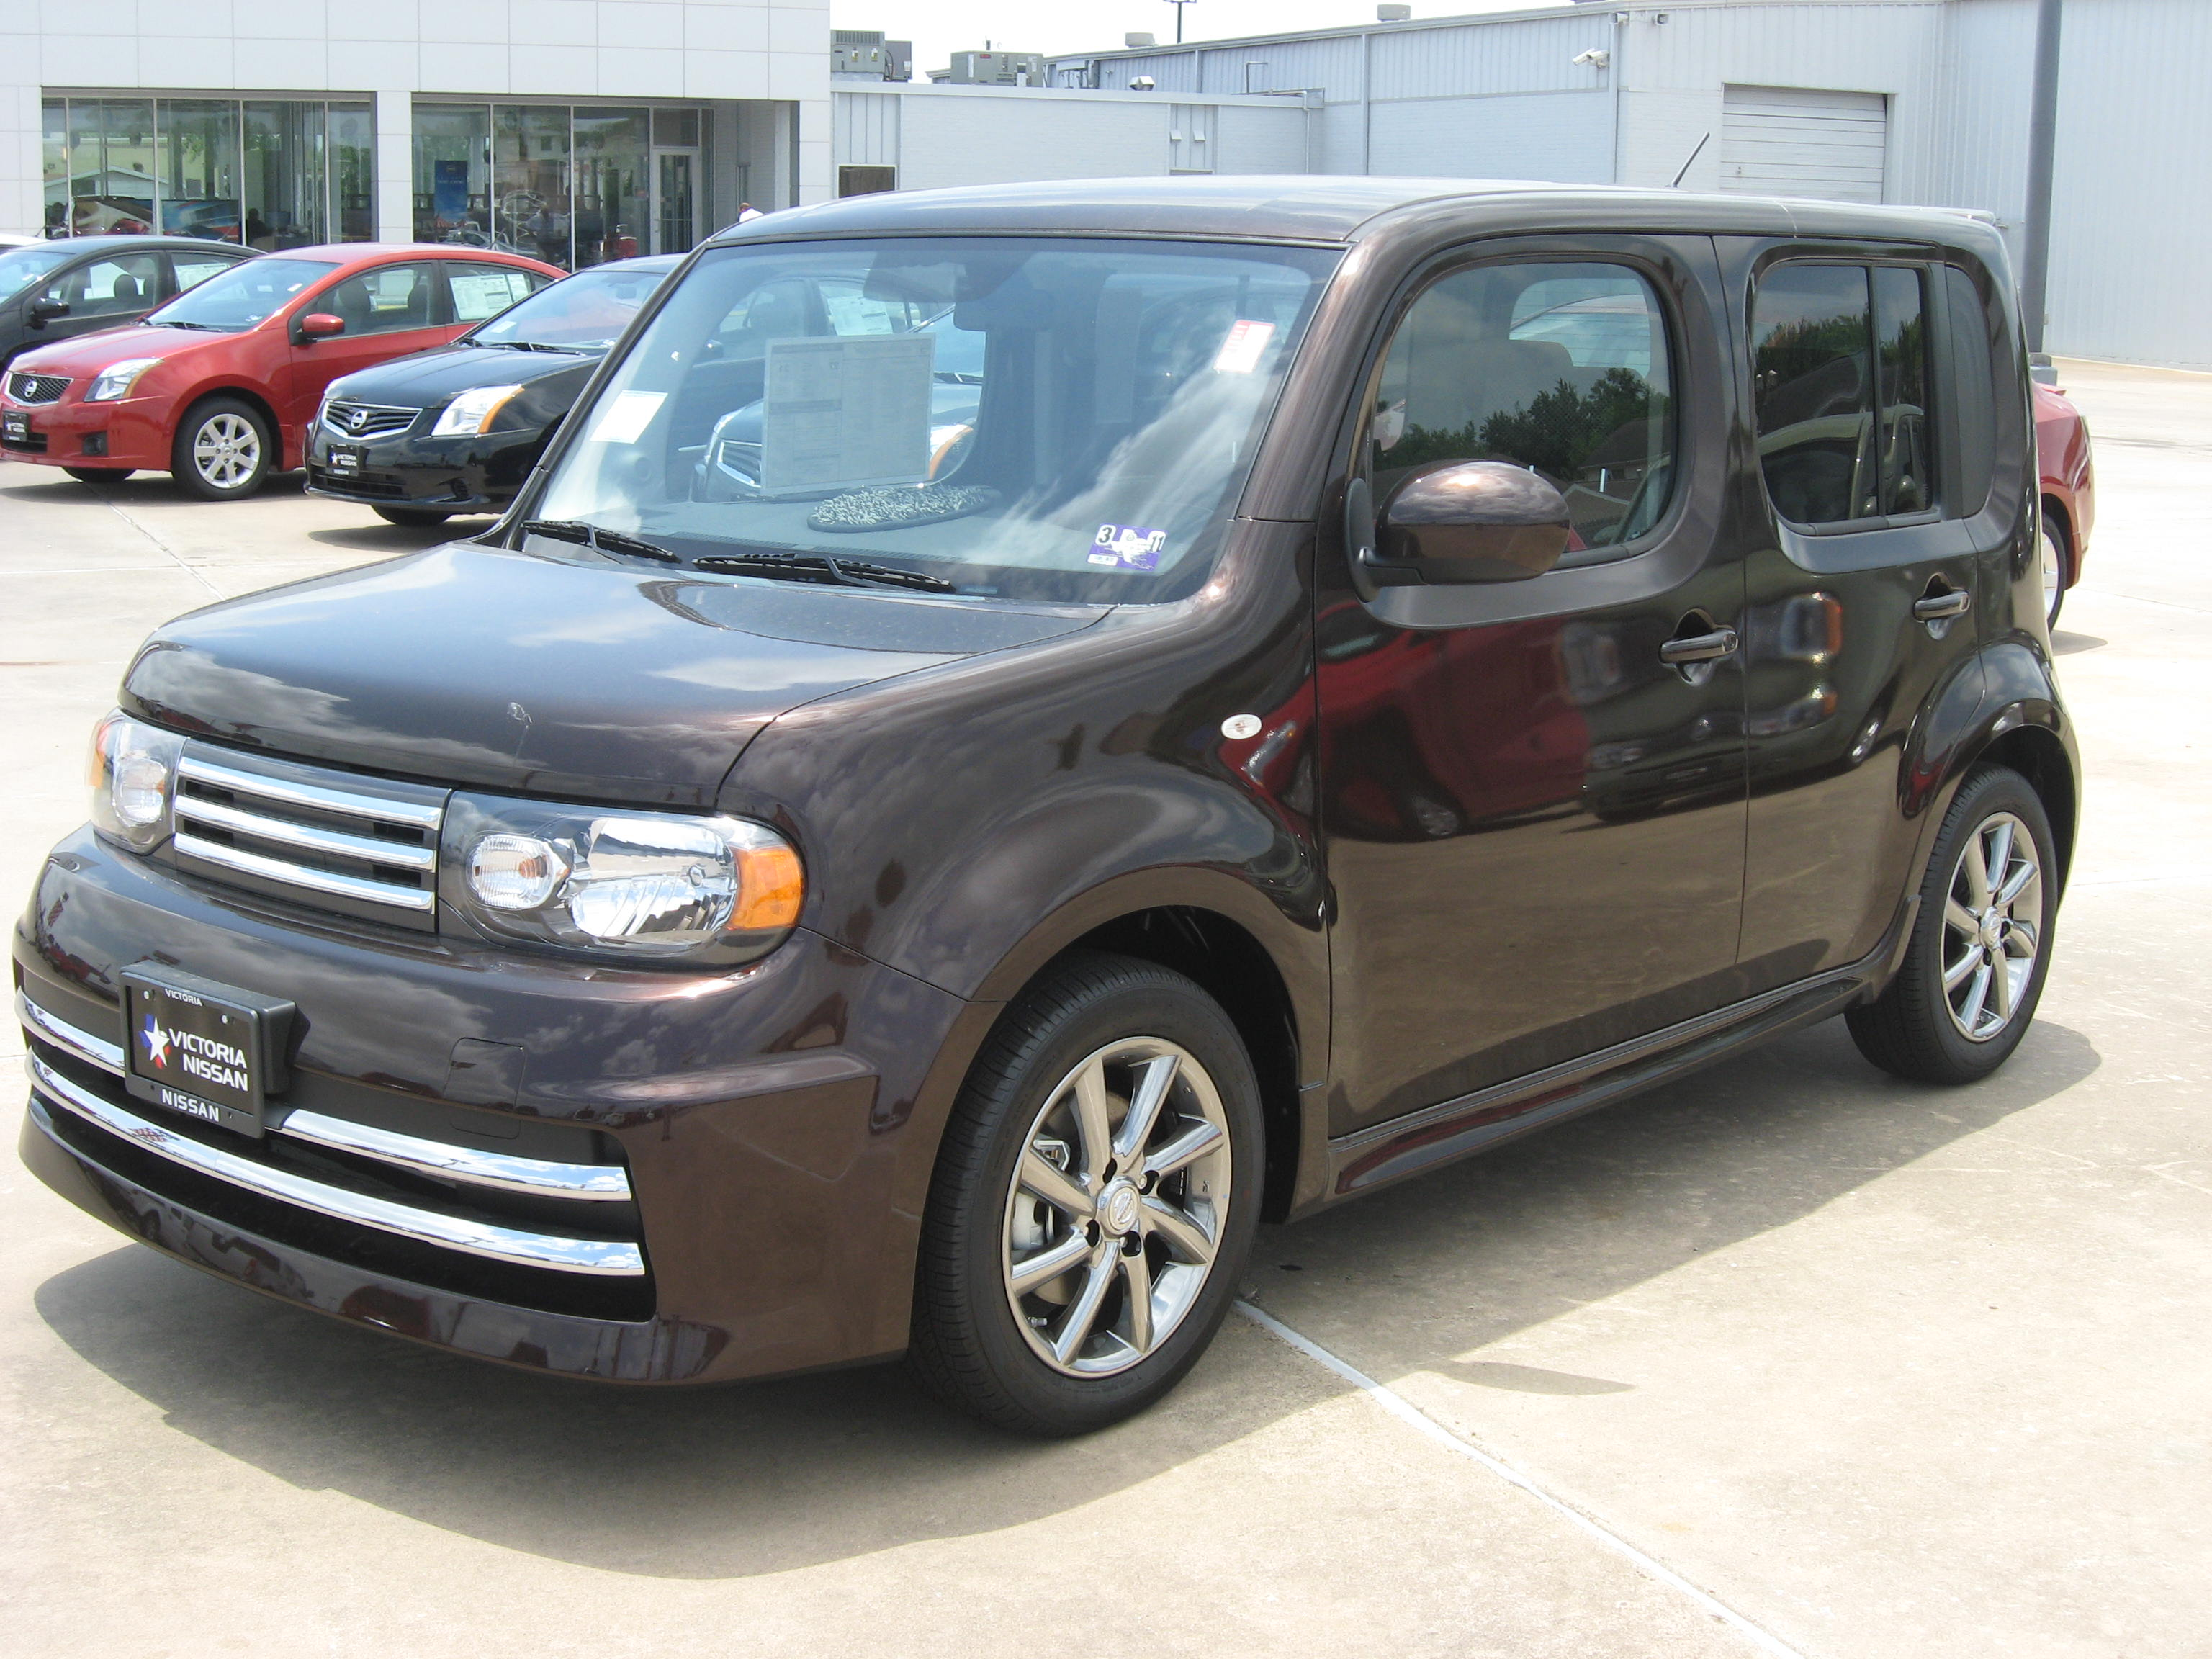 2010 nissan cube dare to be different victoria nissan news 2010 nissan cube dare to be different vanachro Choice Image